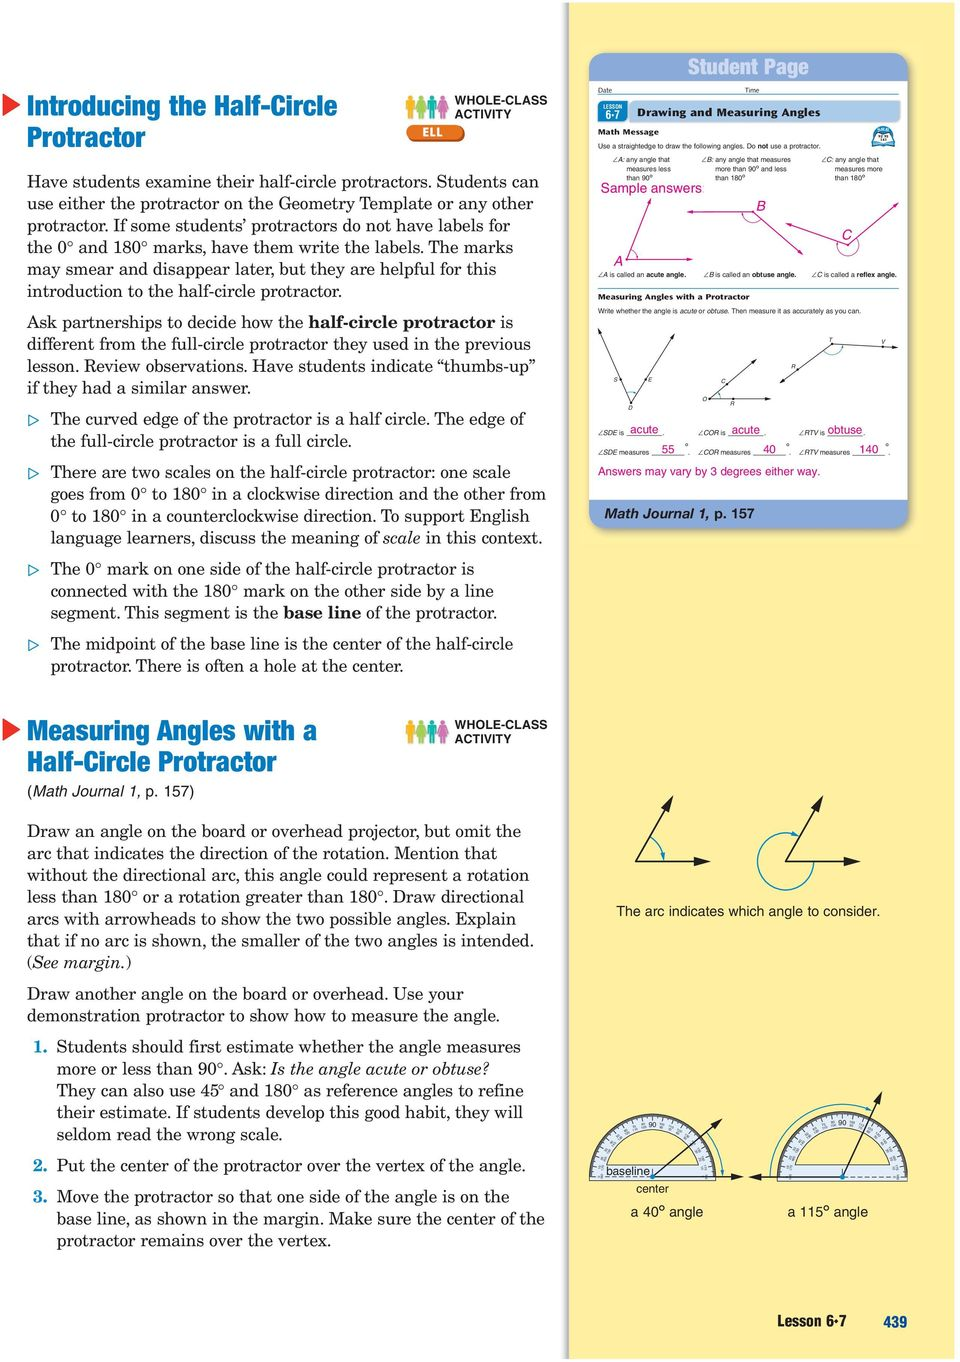 The marks may smear and disappear later, but they are helpful for this introduction to the half-circle protractor.